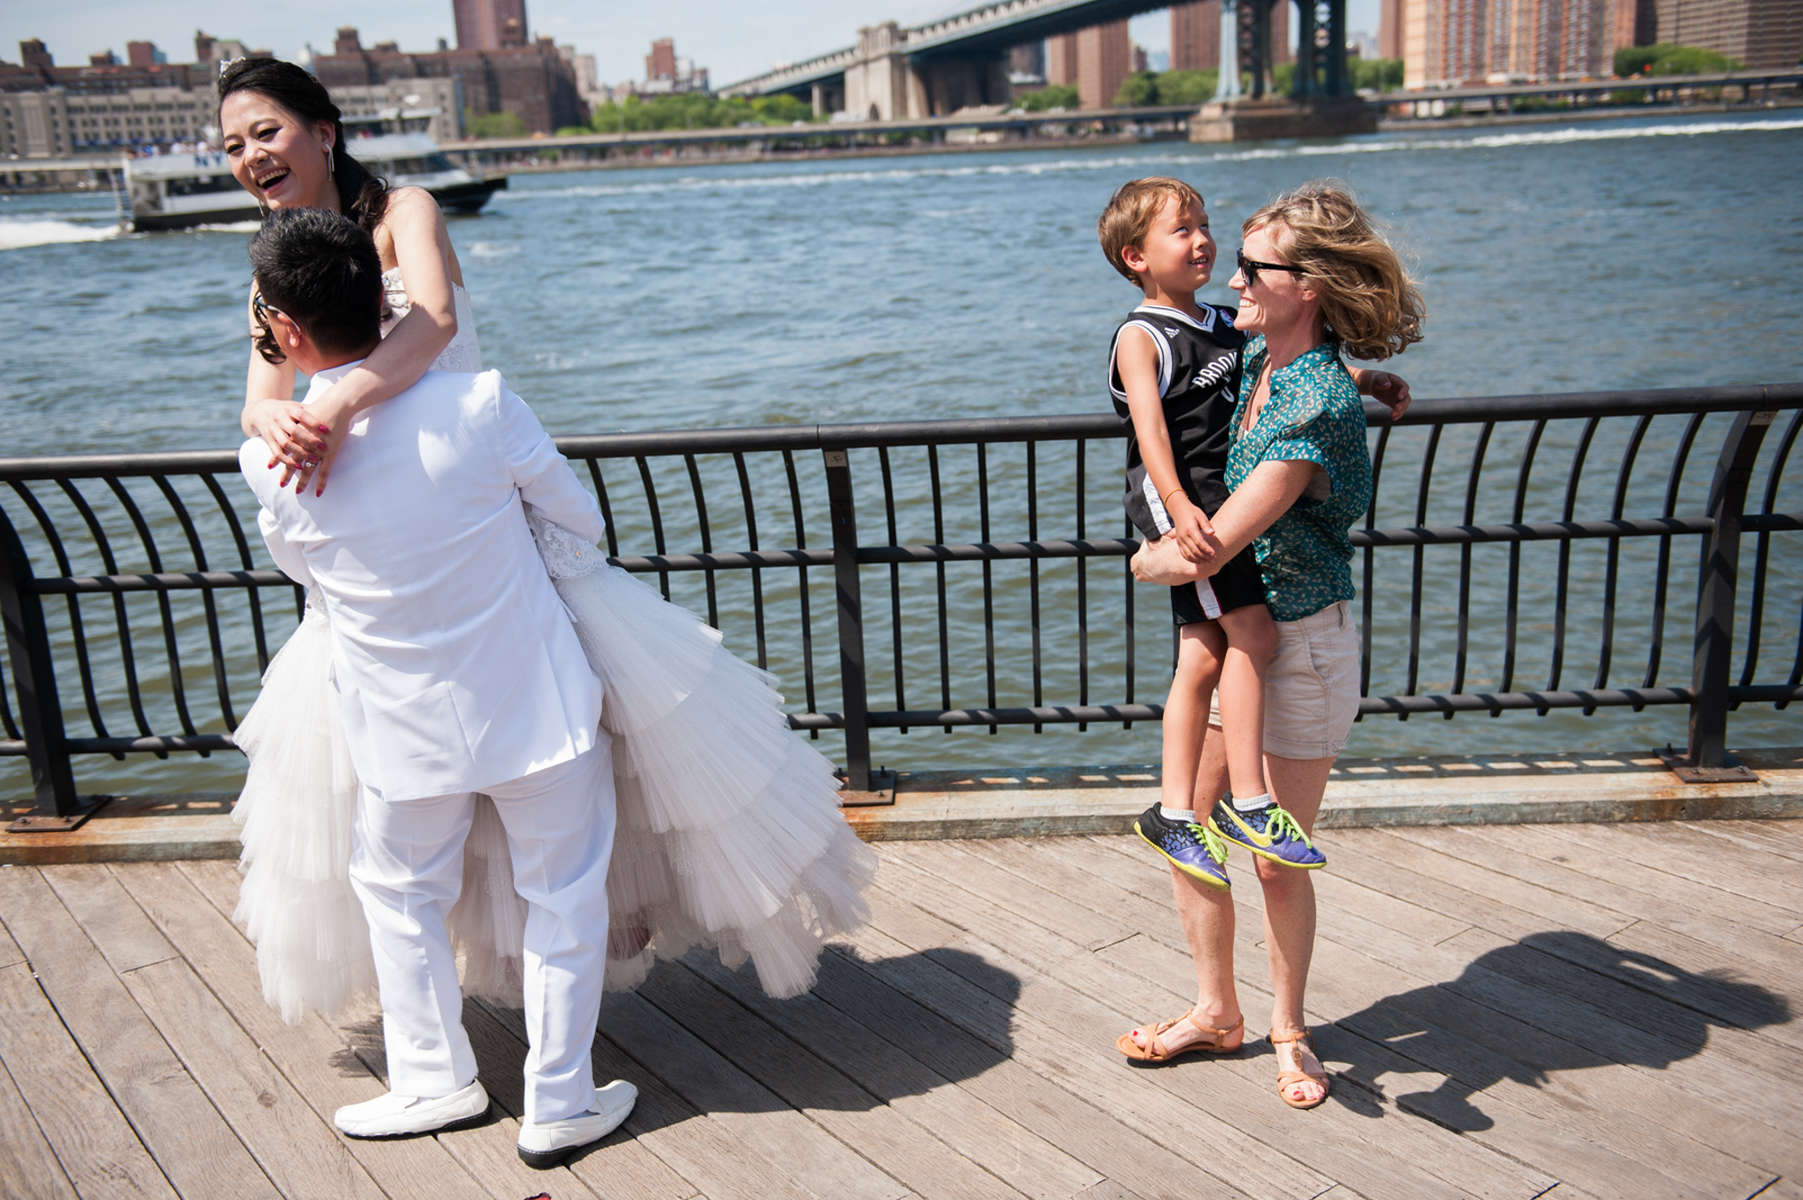 It's not unusual to see co-founder of The Knot photo-bombing wedding photographs in her Dumbo neighborhood. Shes pictured here, twirling her son Dumbo, 6, next to bride Tracy Lin and husband-to-be Dezhi Yang. (June 8, 2014)Photo by Nancy Borowick